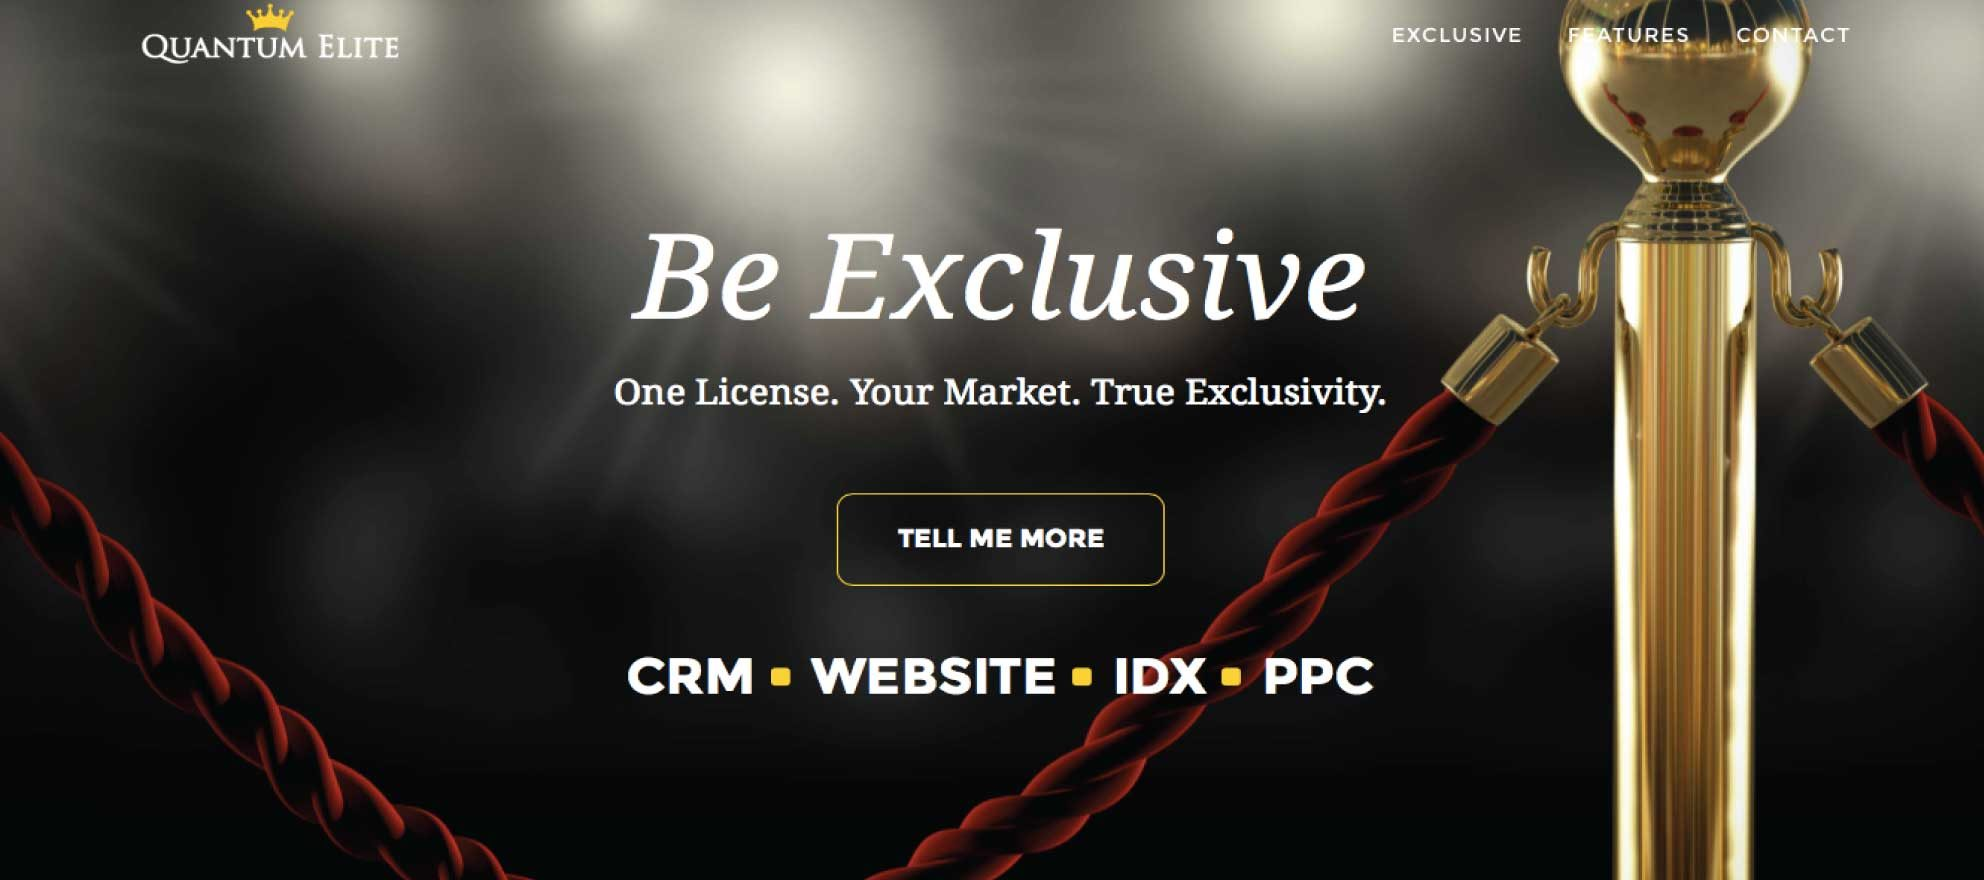 All-in-one marketing and lead-gen provider now offering geographic exclusivity